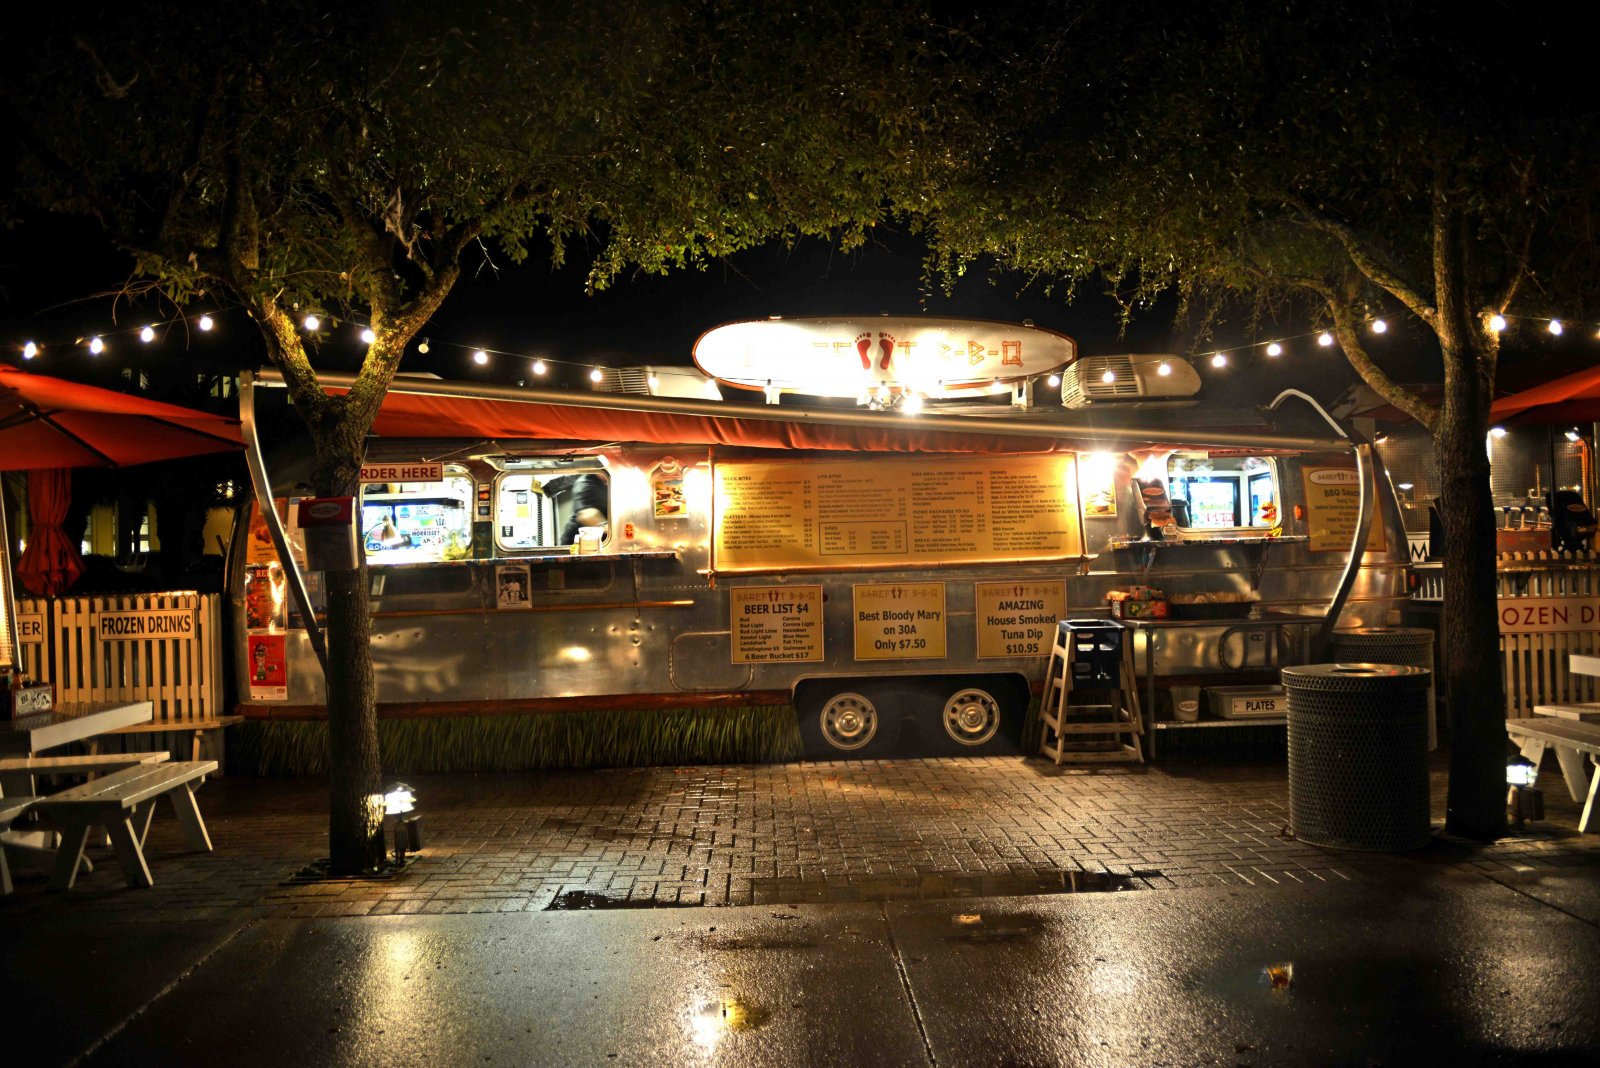 Click image for larger version  Name:AS Diner-1-s.jpg Views:89 Size:381.8 KB ID:228495